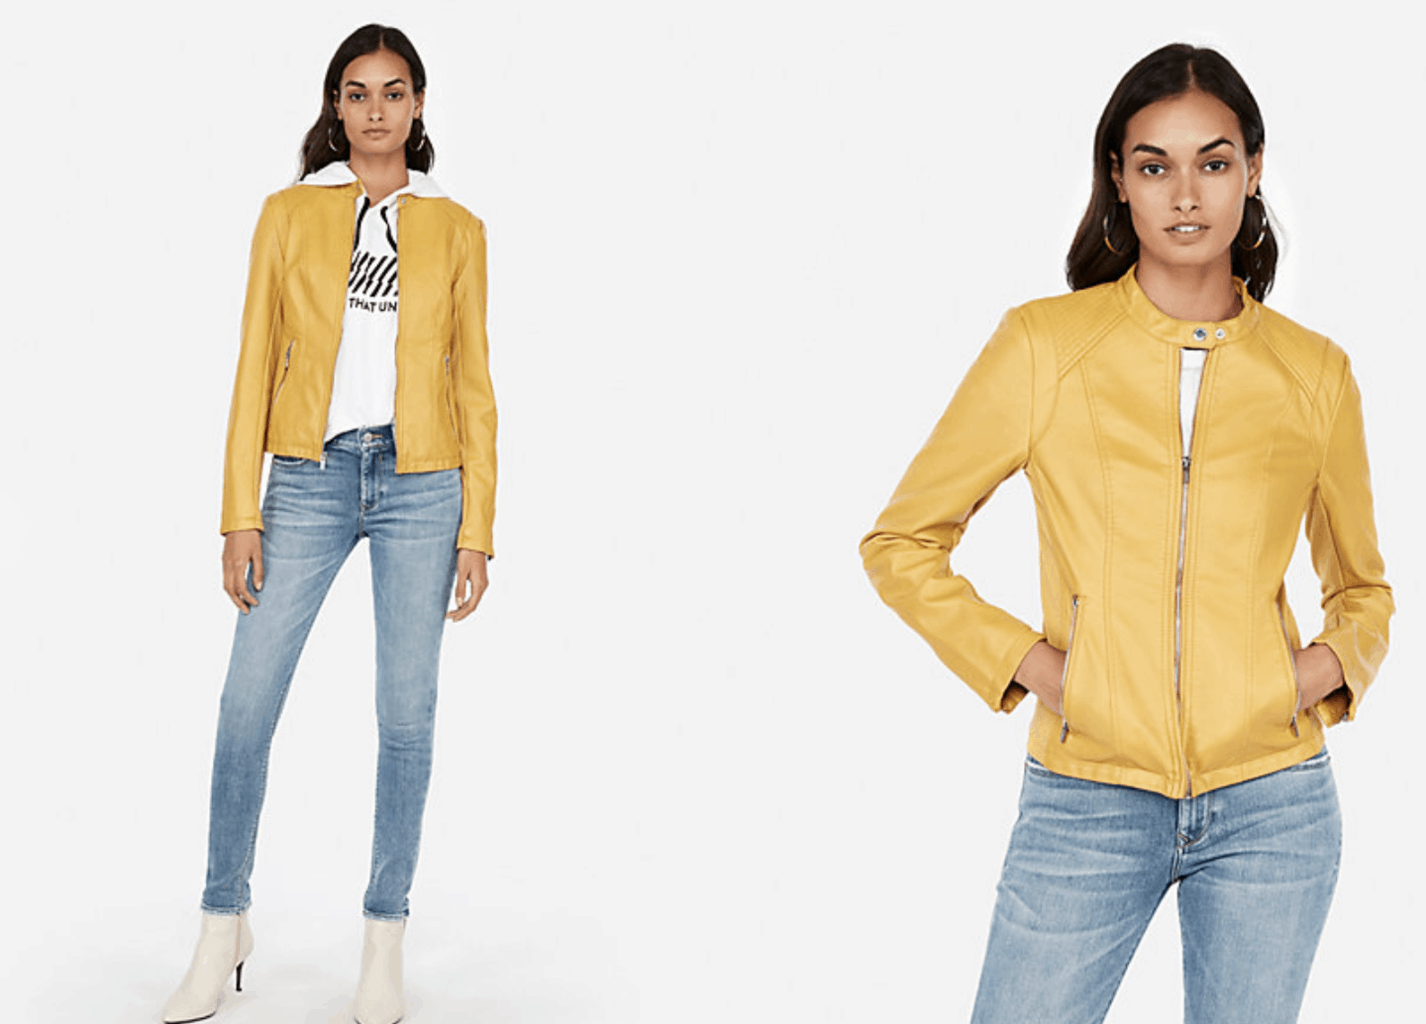 model in yellow leather jacket and jeans